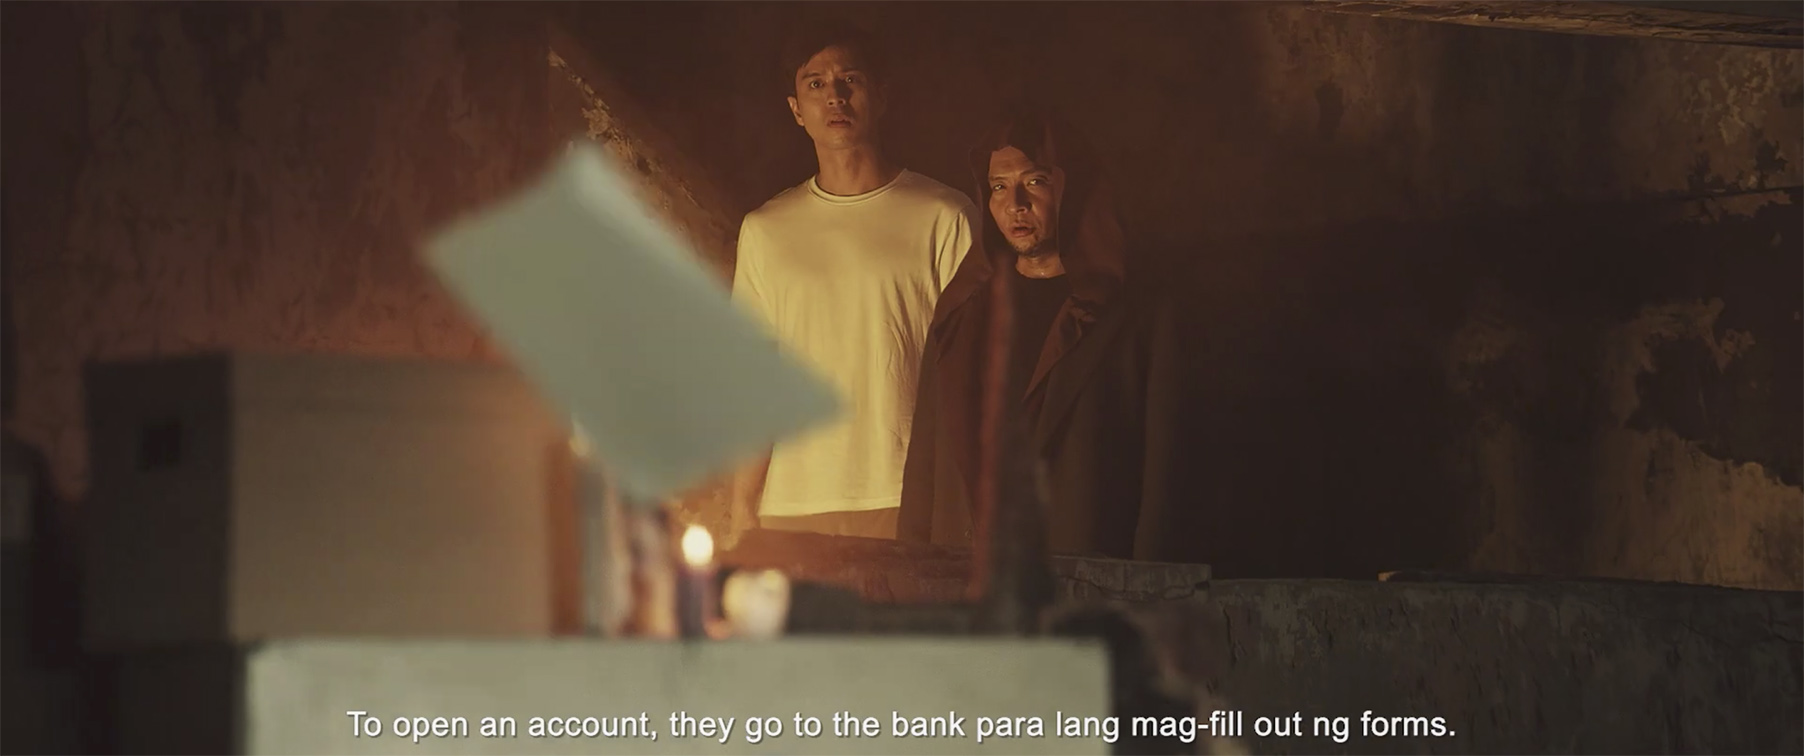 Virgil takes Dante around the world of hassle banking in UnionBank campaign via FCB Manila